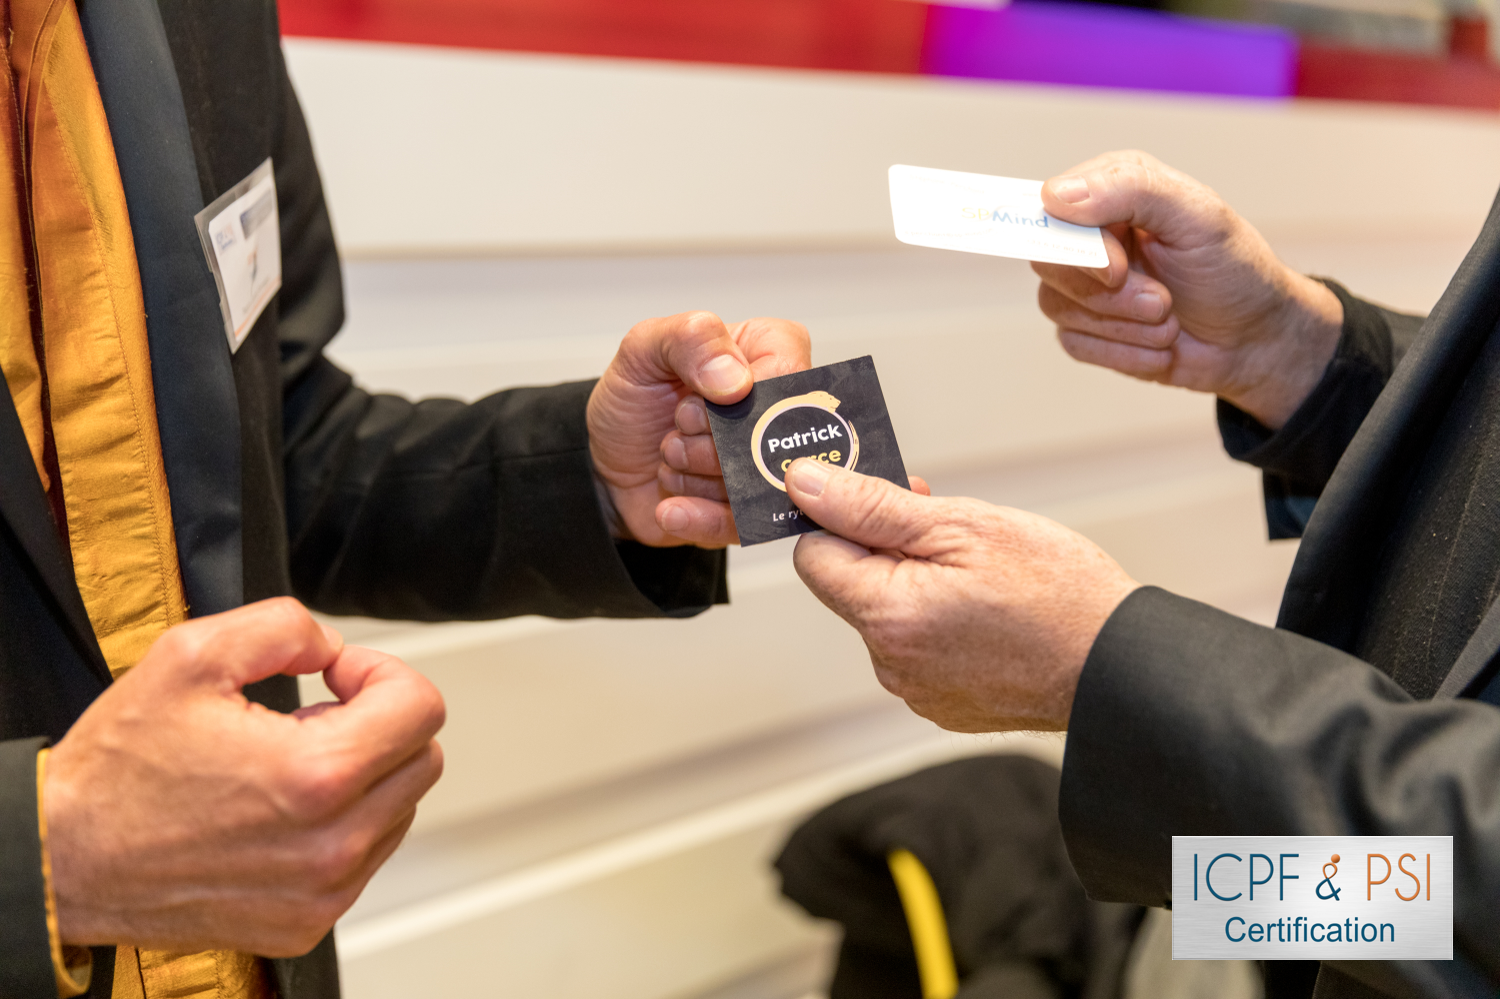 Echange carte business soirée networking ICPF 14 mai 2019